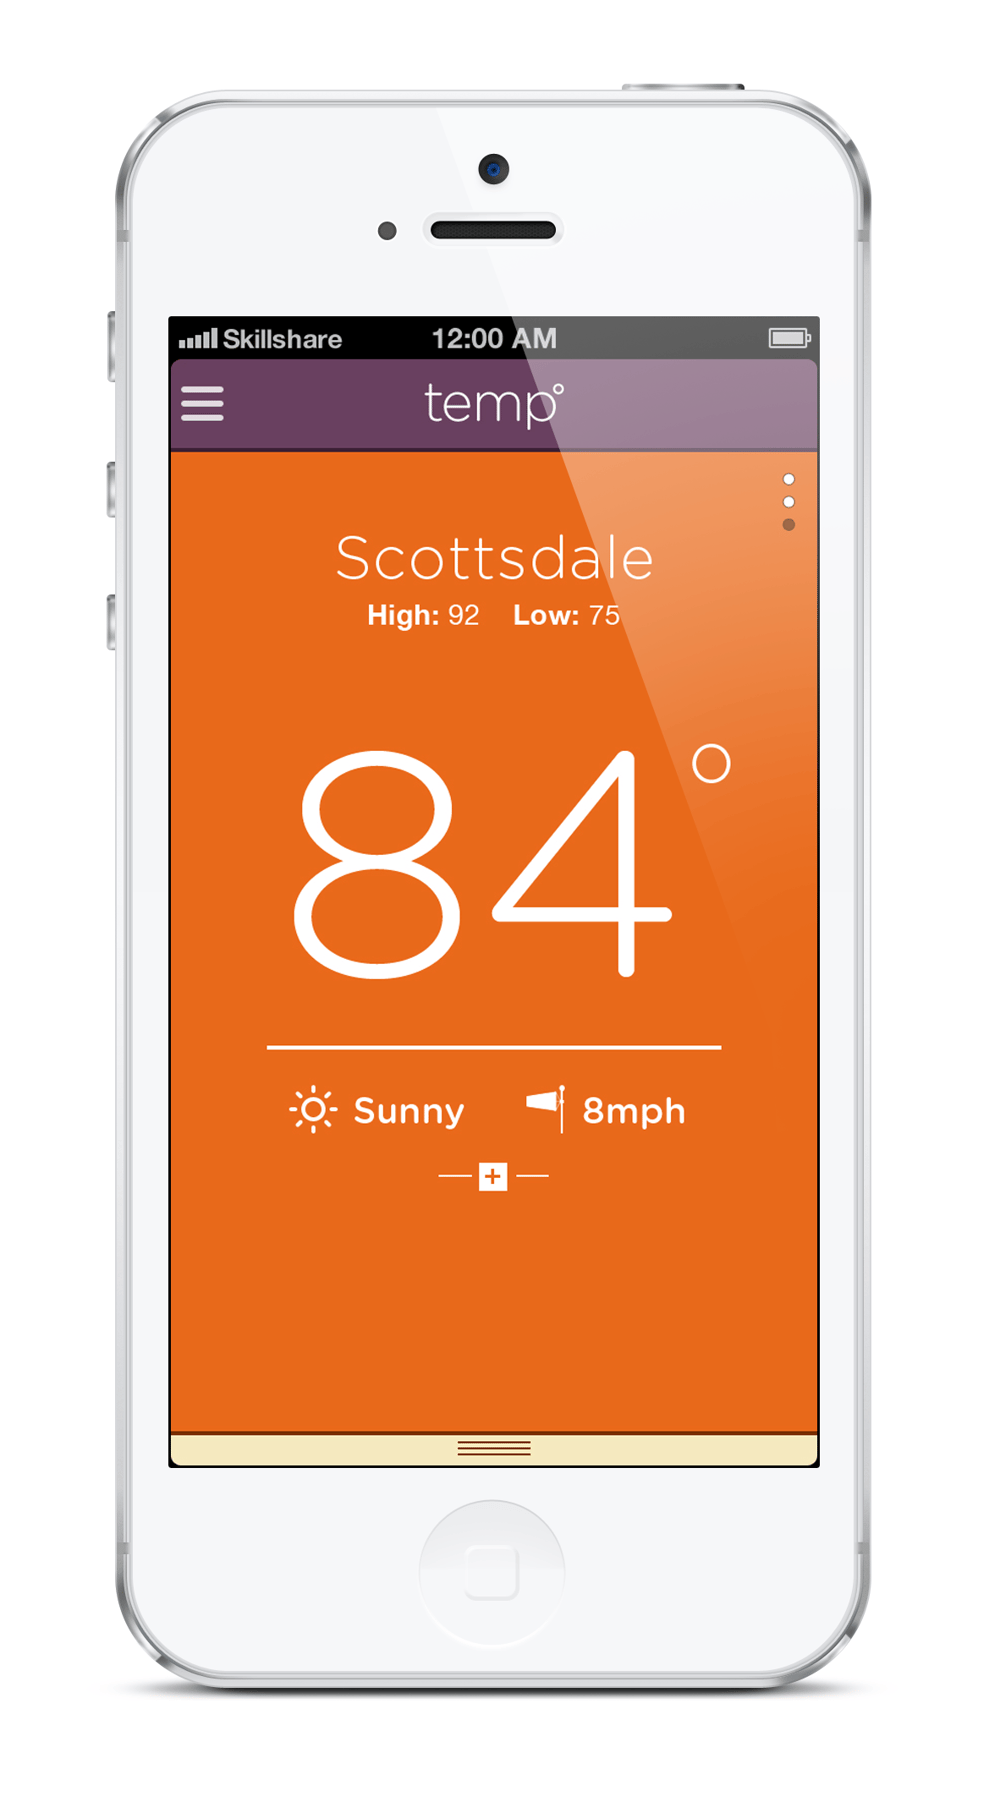 temp weather app - image 5 - student project